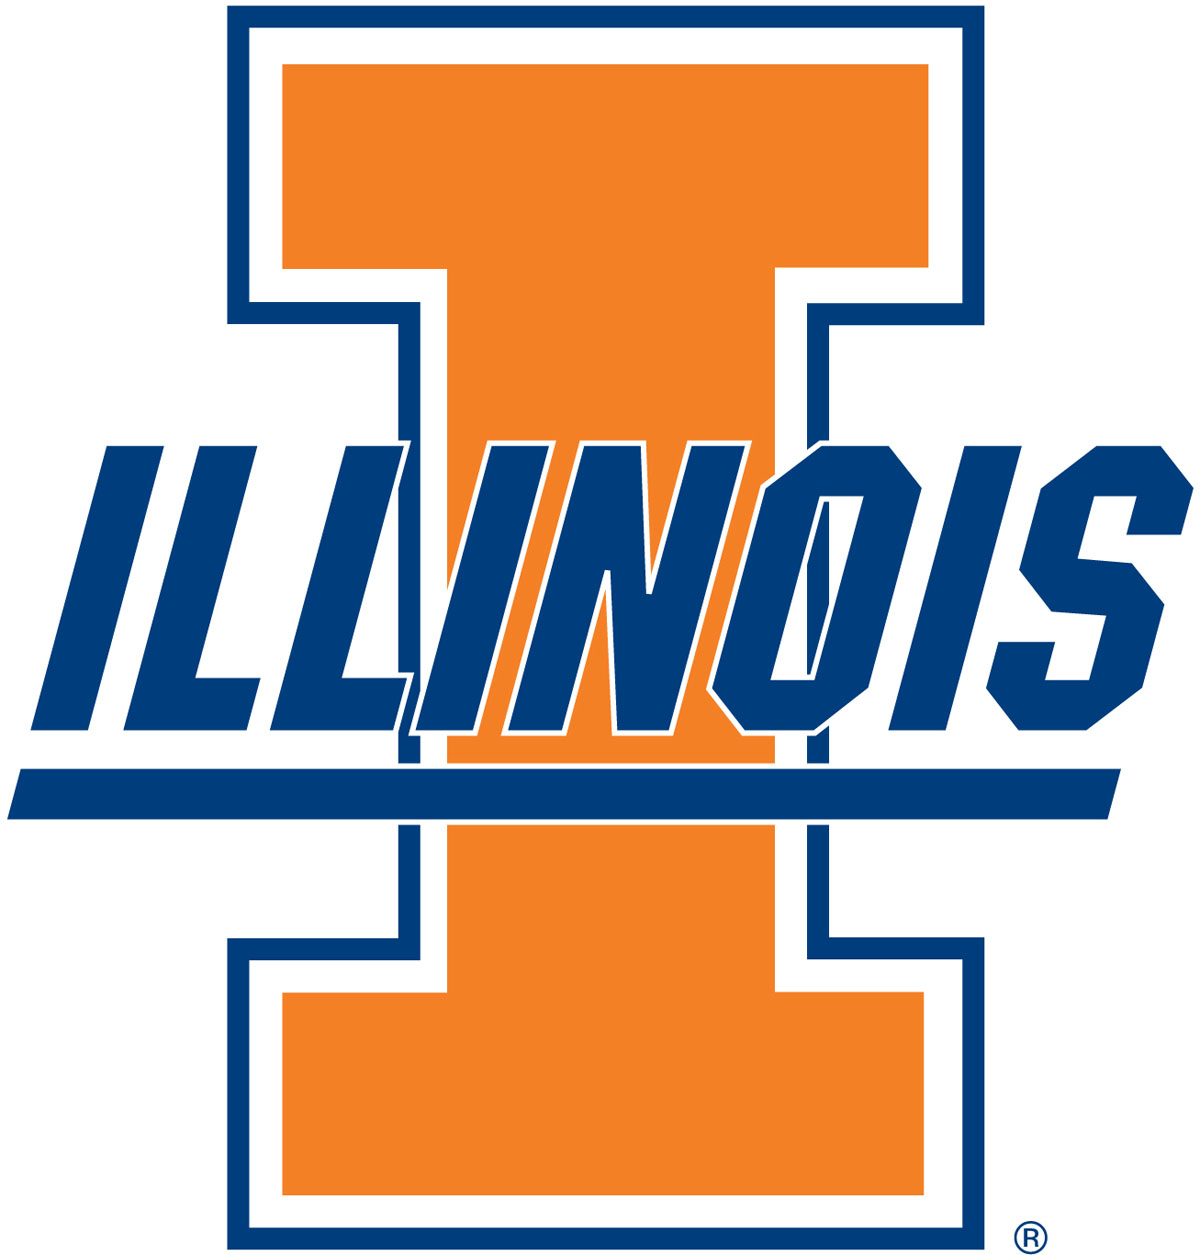 Illinois Football Wallpaper - Big - 178.2KB